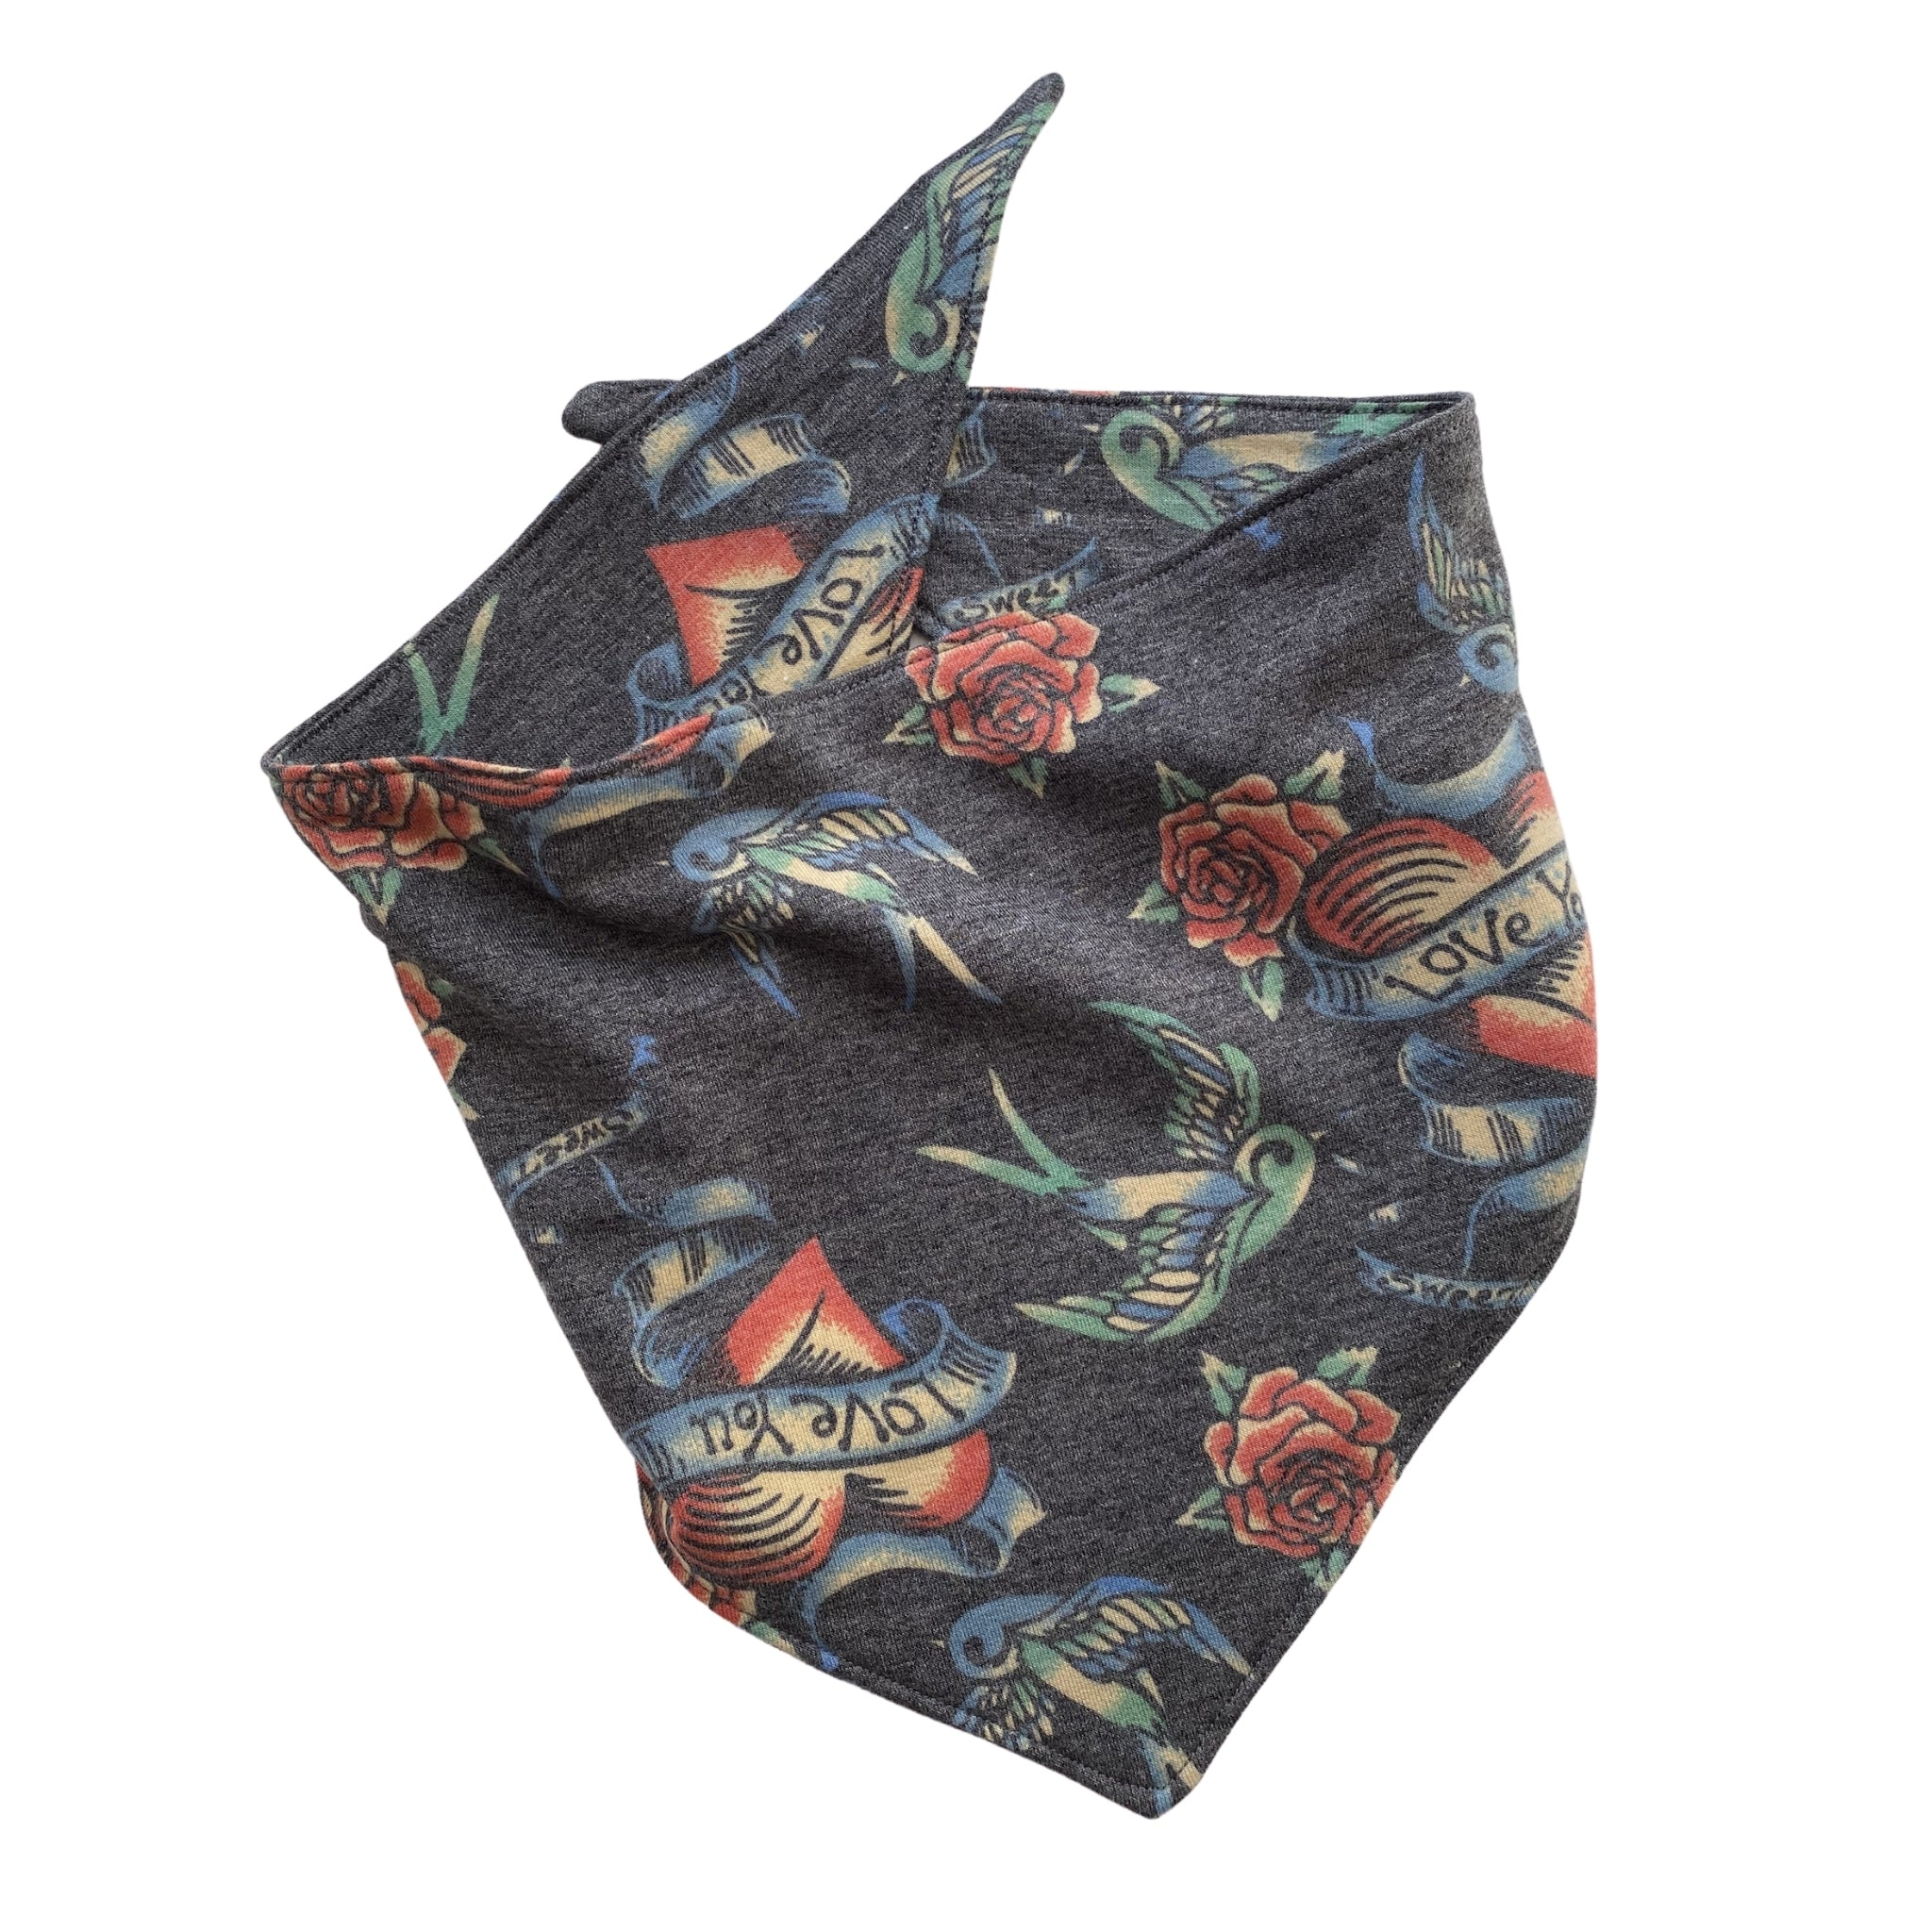 Tattoo love with doves and roses on soft black scARF bandana